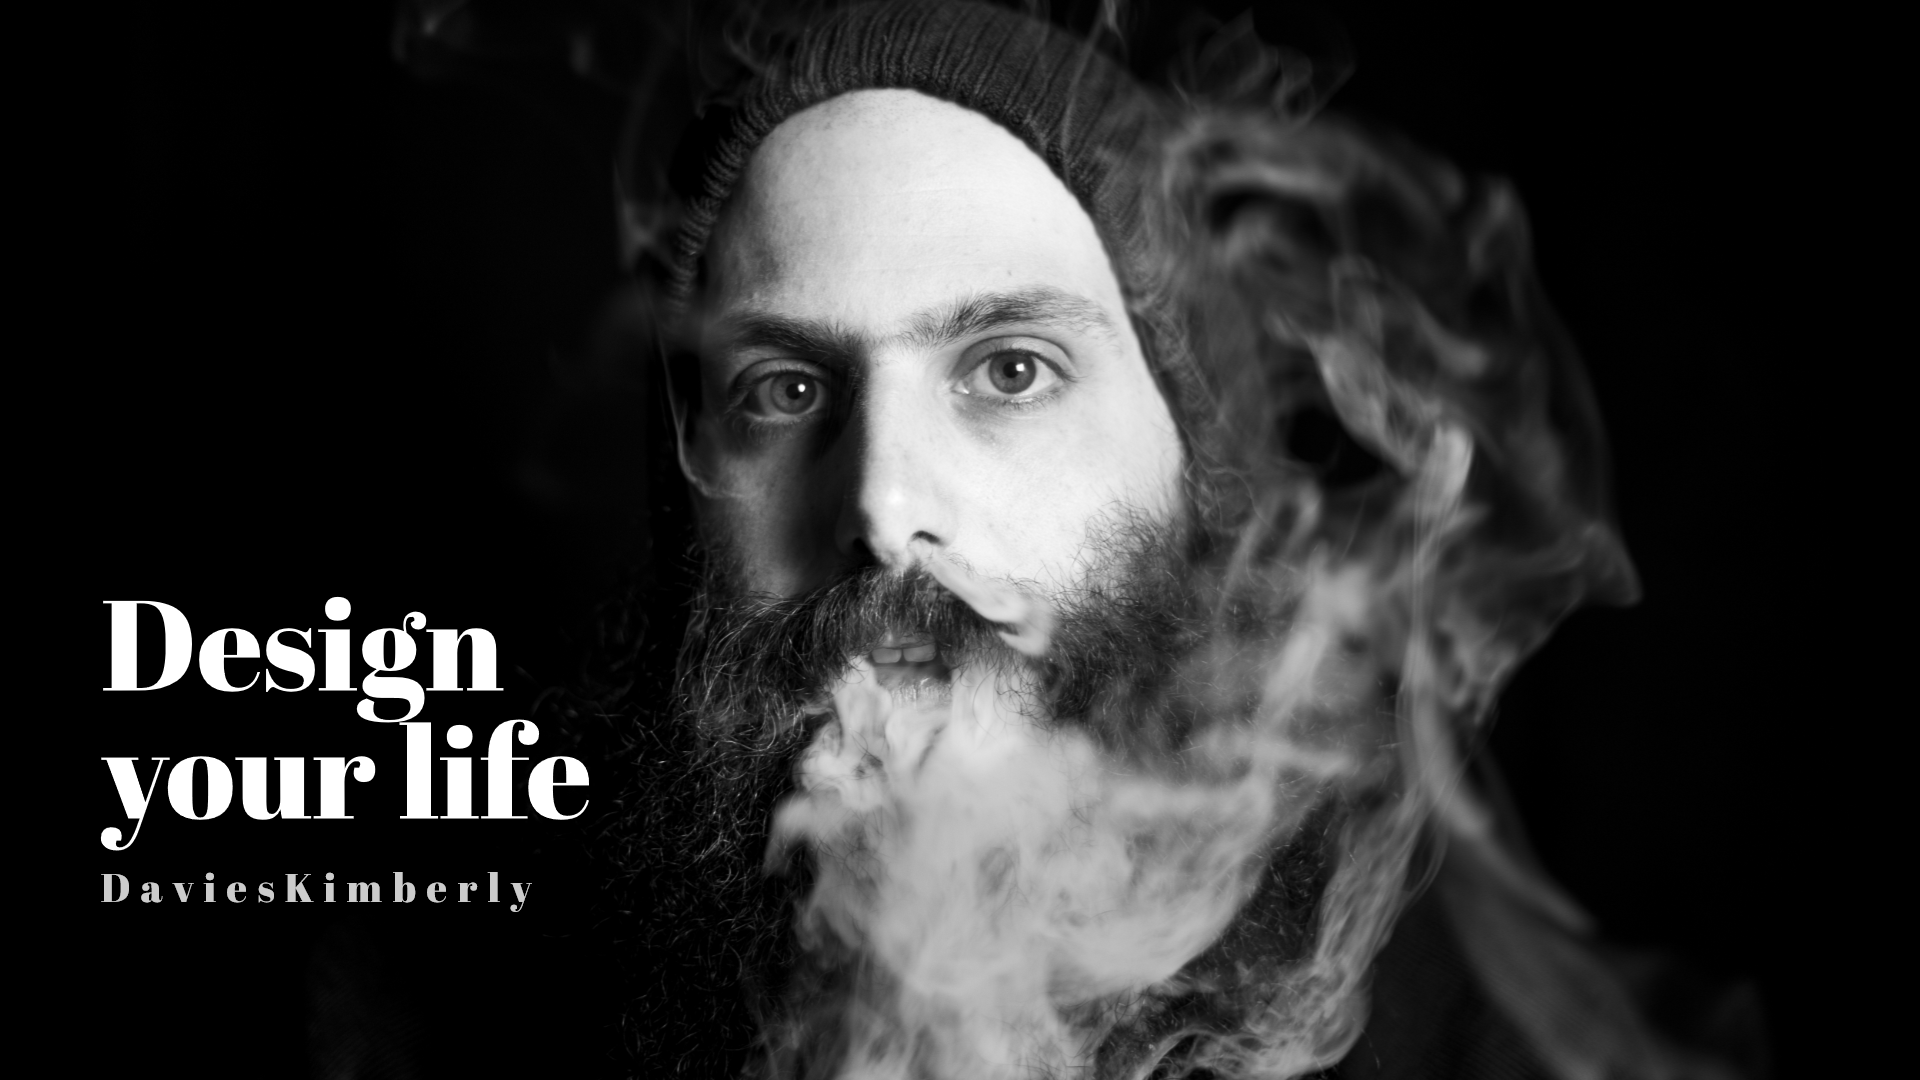 Quote, Saying, Wording, White, Monochrome, Portrait, Beard, Black, And, Photography,  Free Image